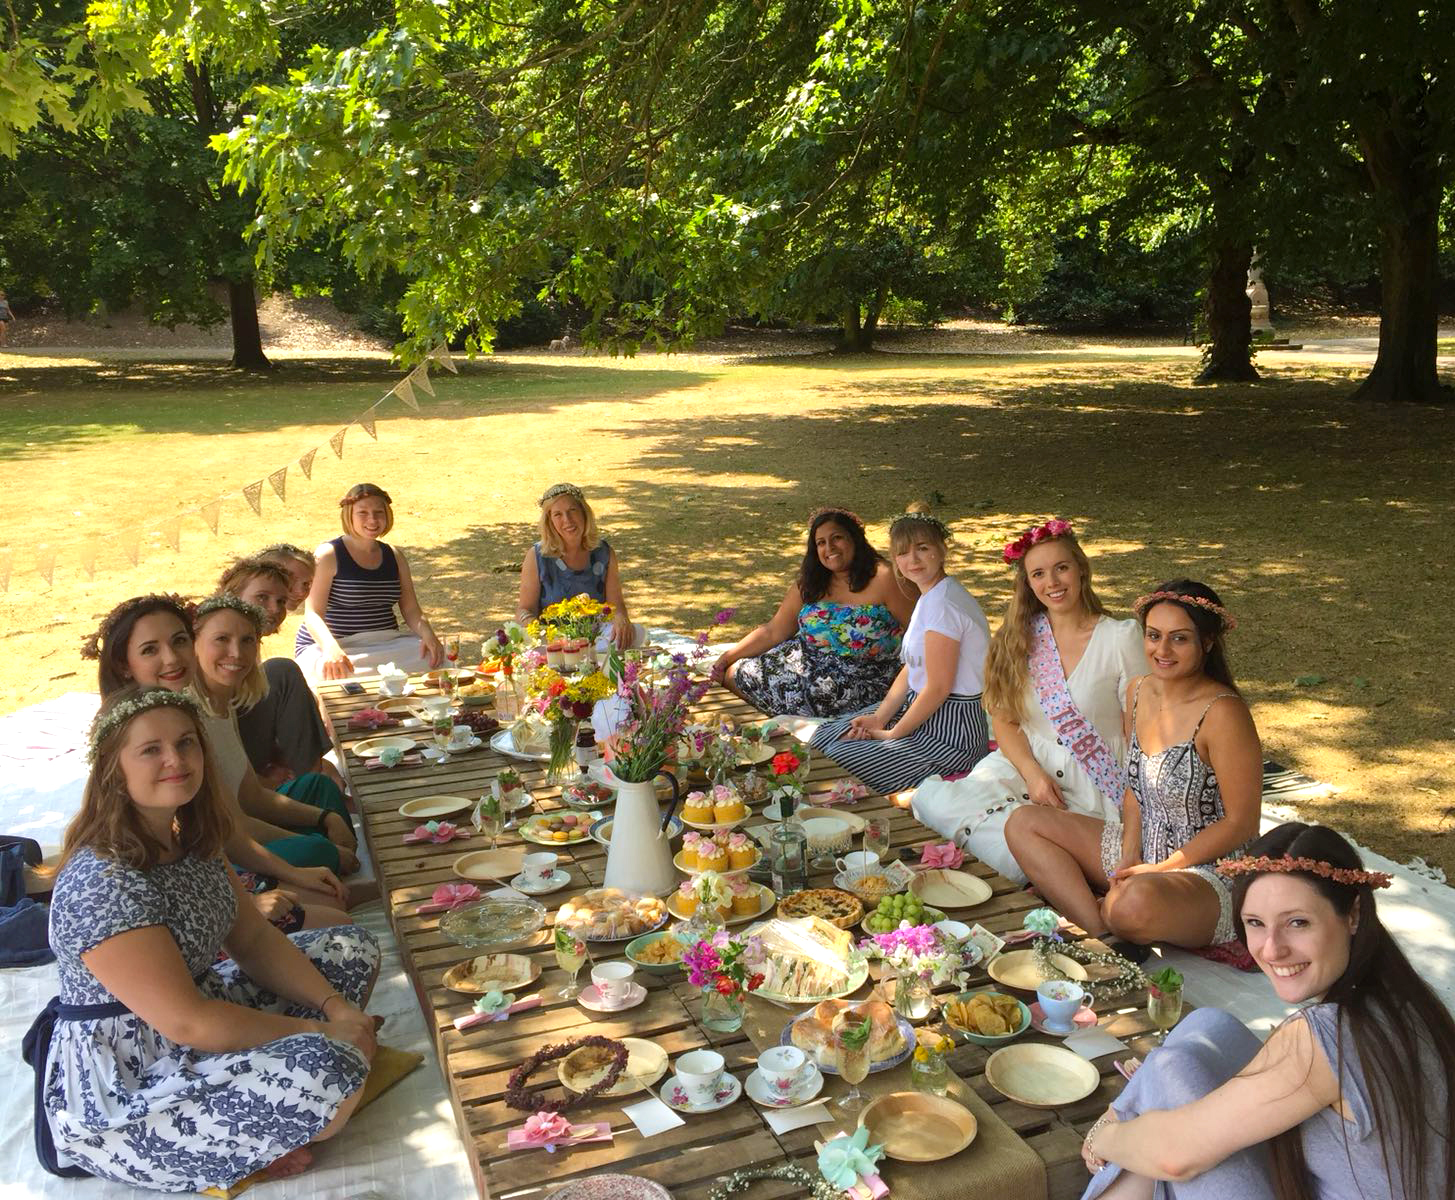 Fun hen do picnic in the park with flowers and crates etc...